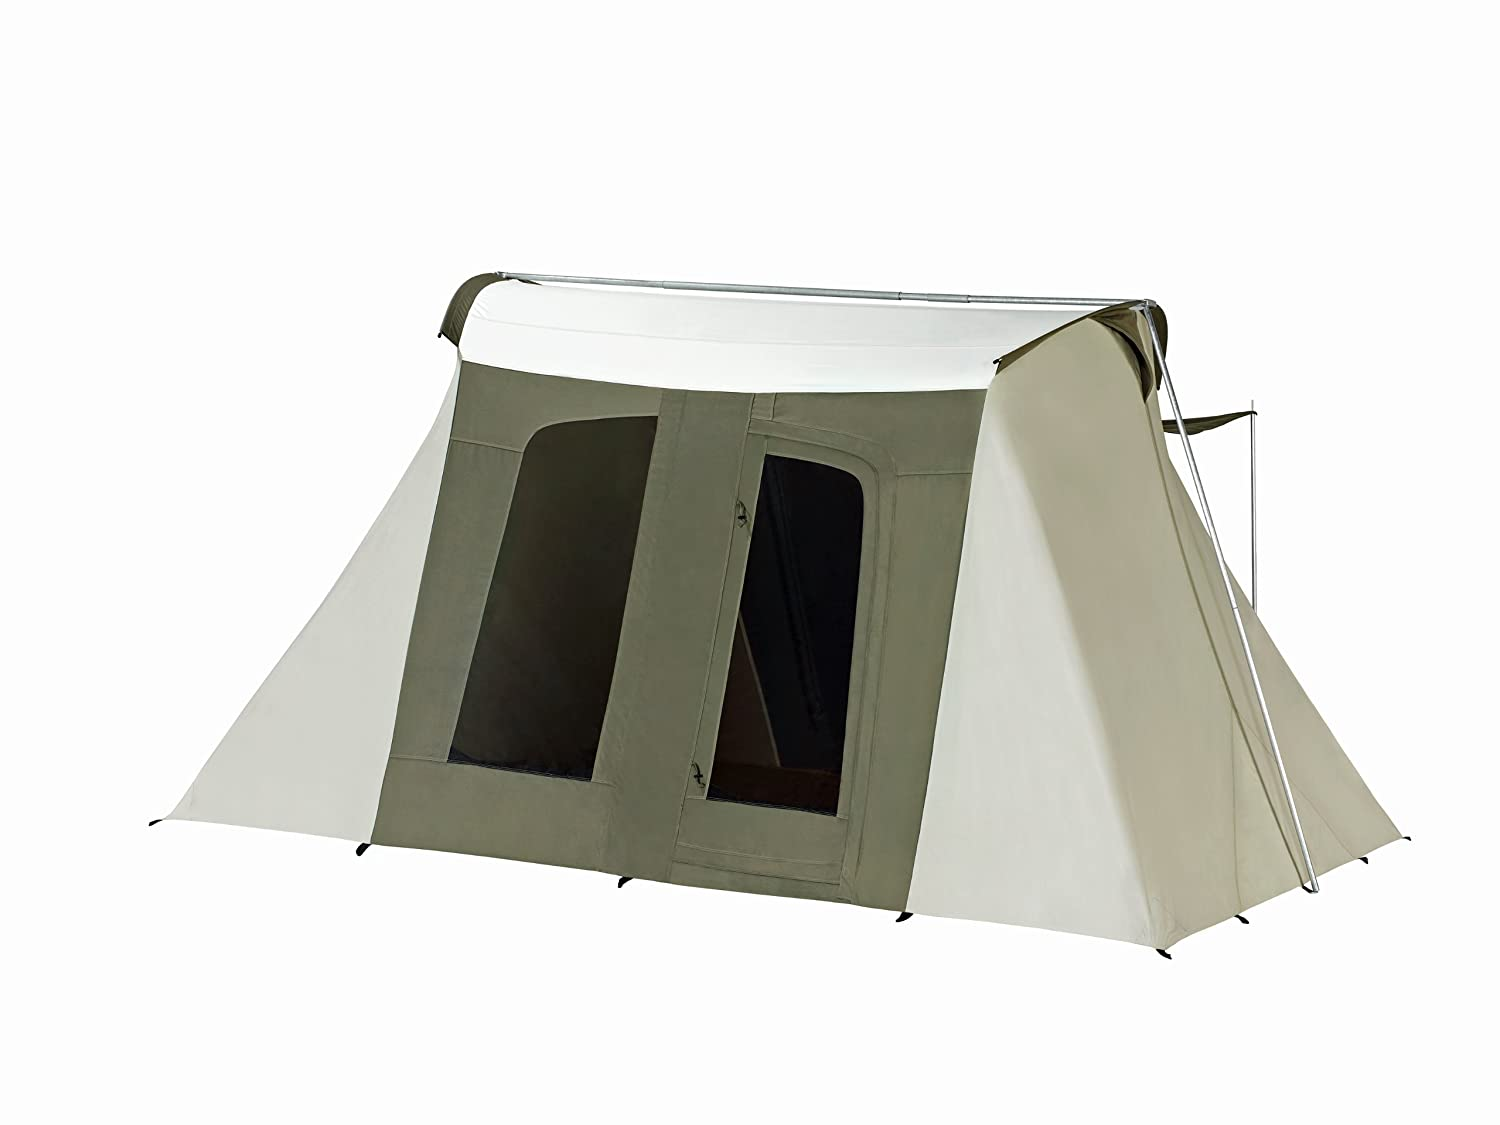 Springbar Tents VS Kodiak Tents – Why I Went With Kodiak